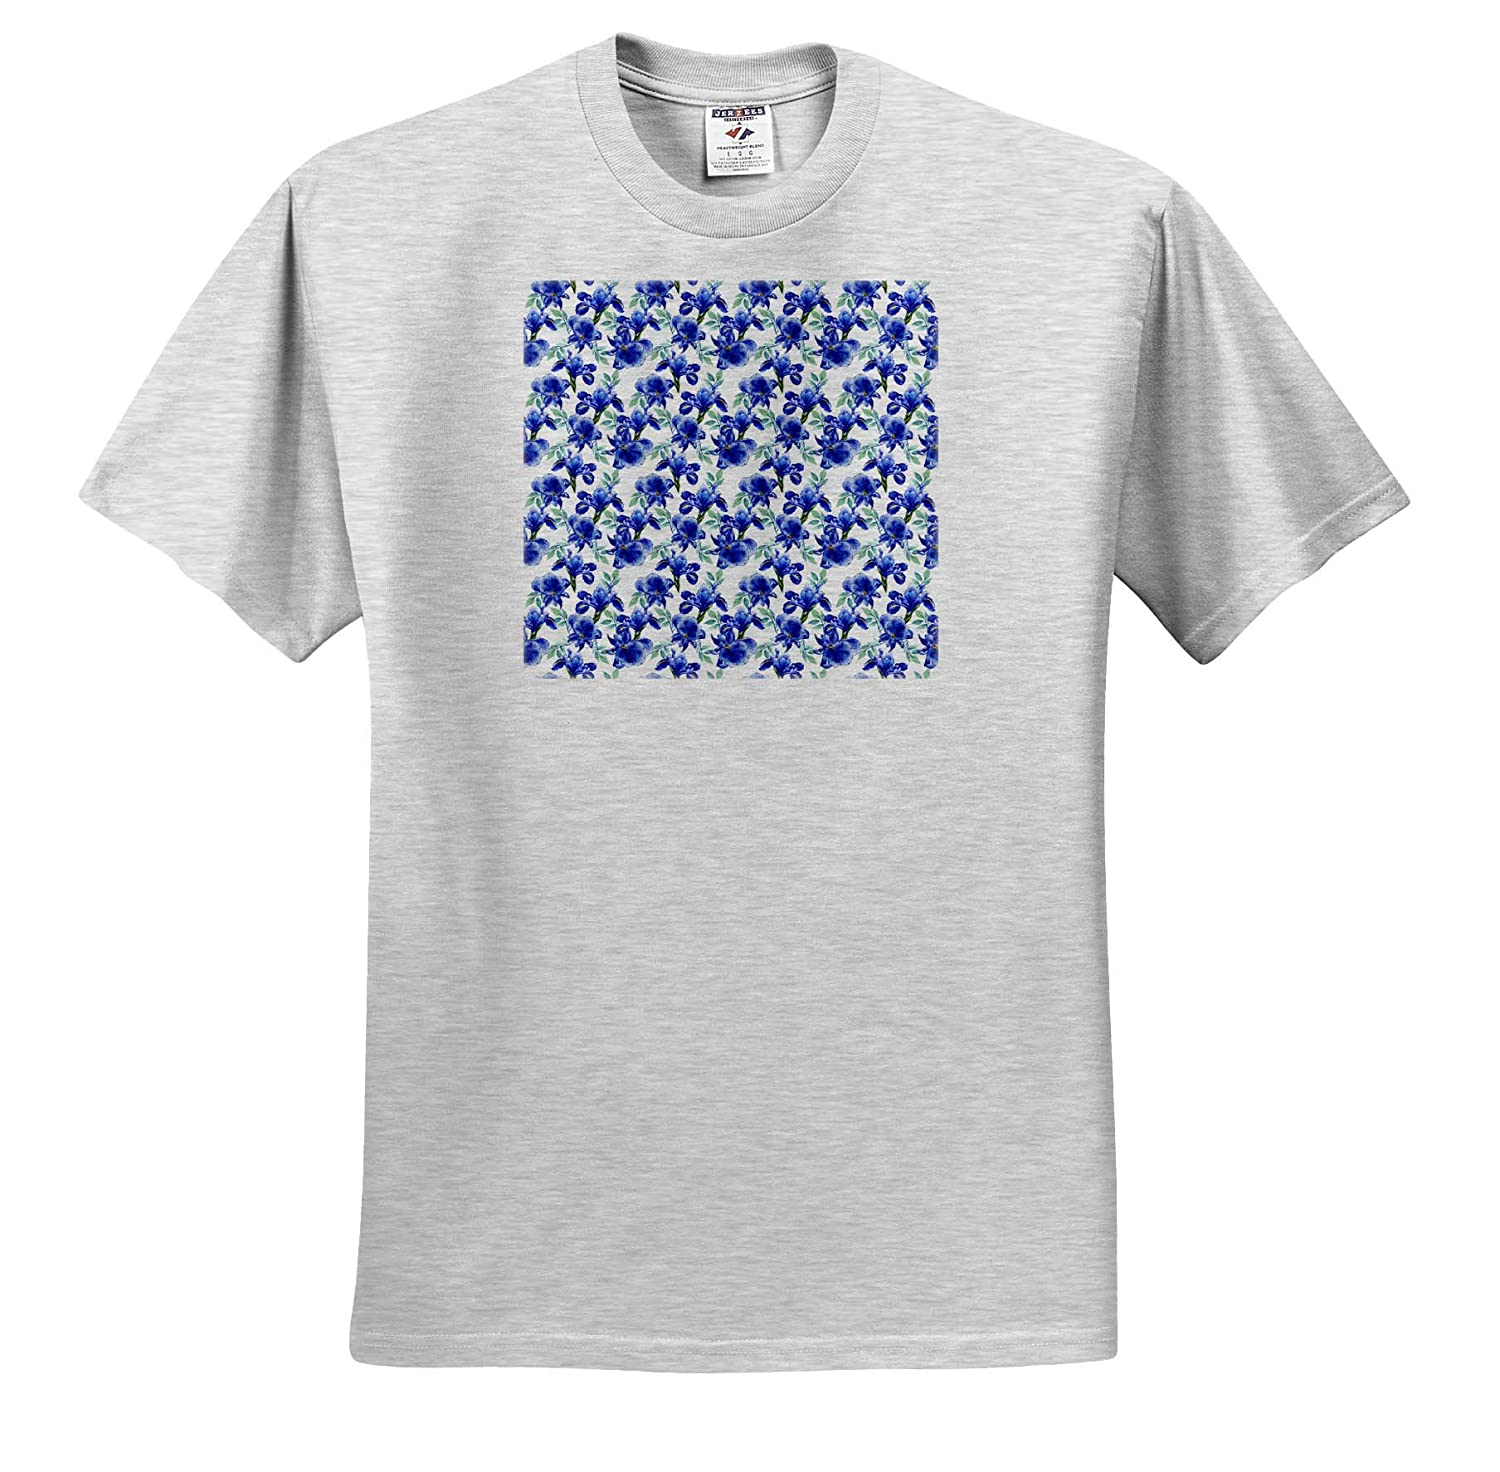 Pattern Floral Iris T-Shirts Dark Green Leaves on White Background 3dRose Alexis Design Pattern of Blue iris Flowers